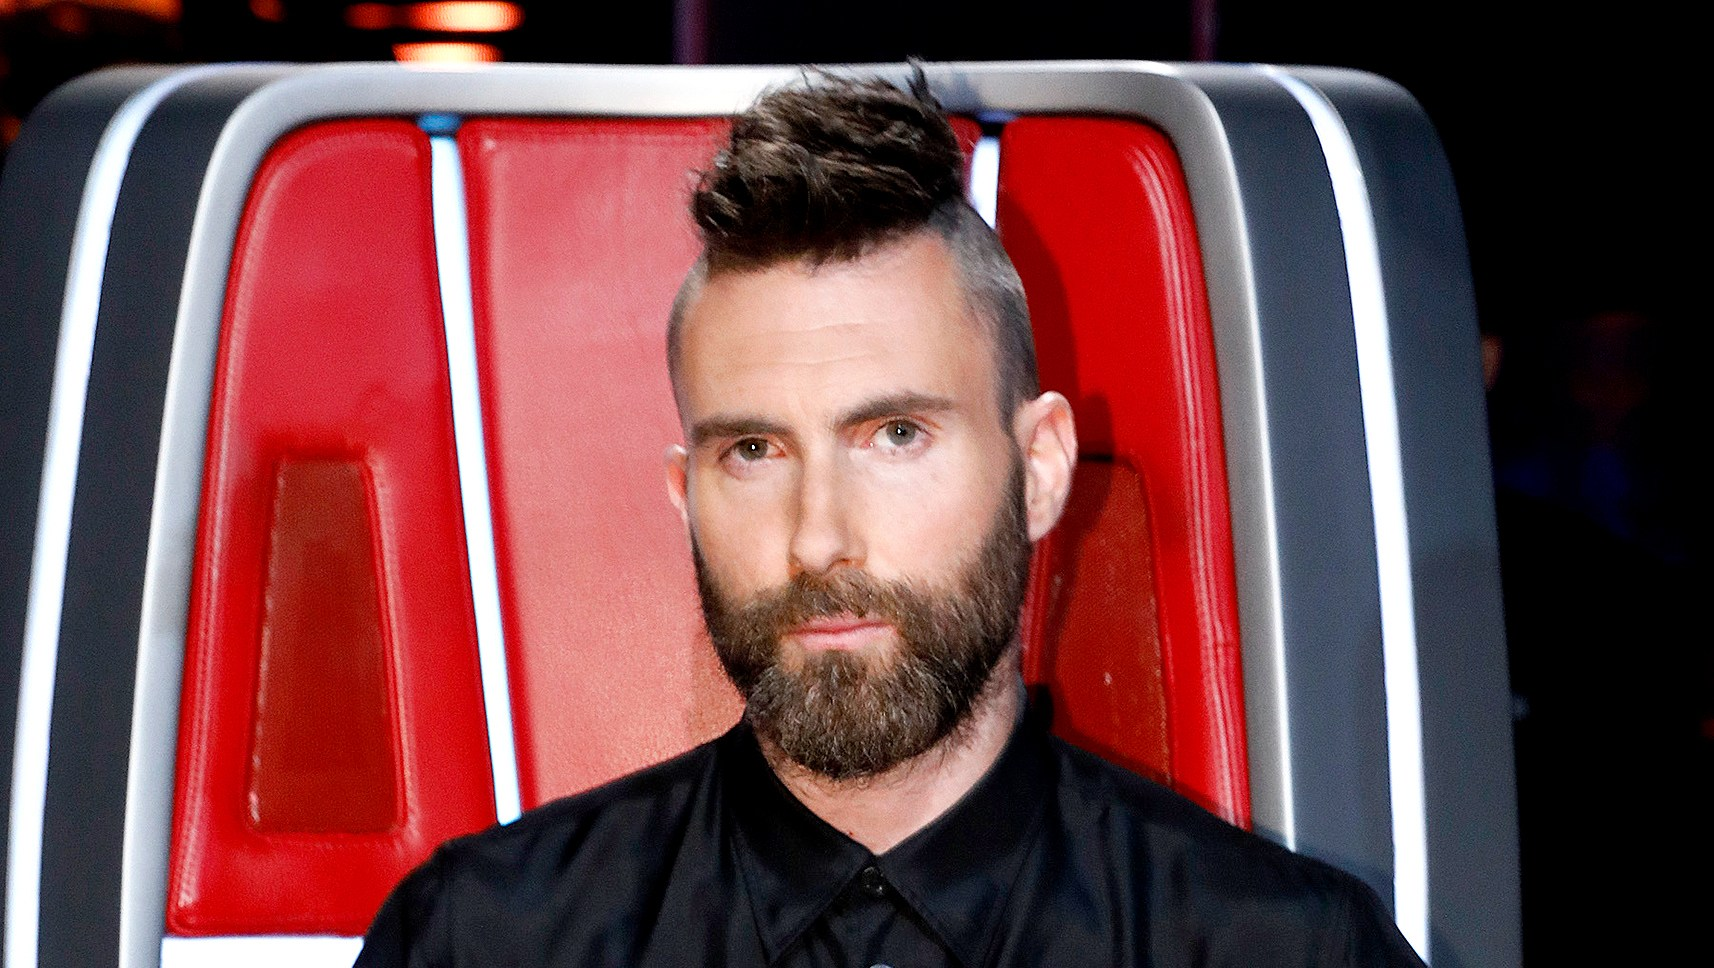 Adam-Levine-leaving-The-Voice